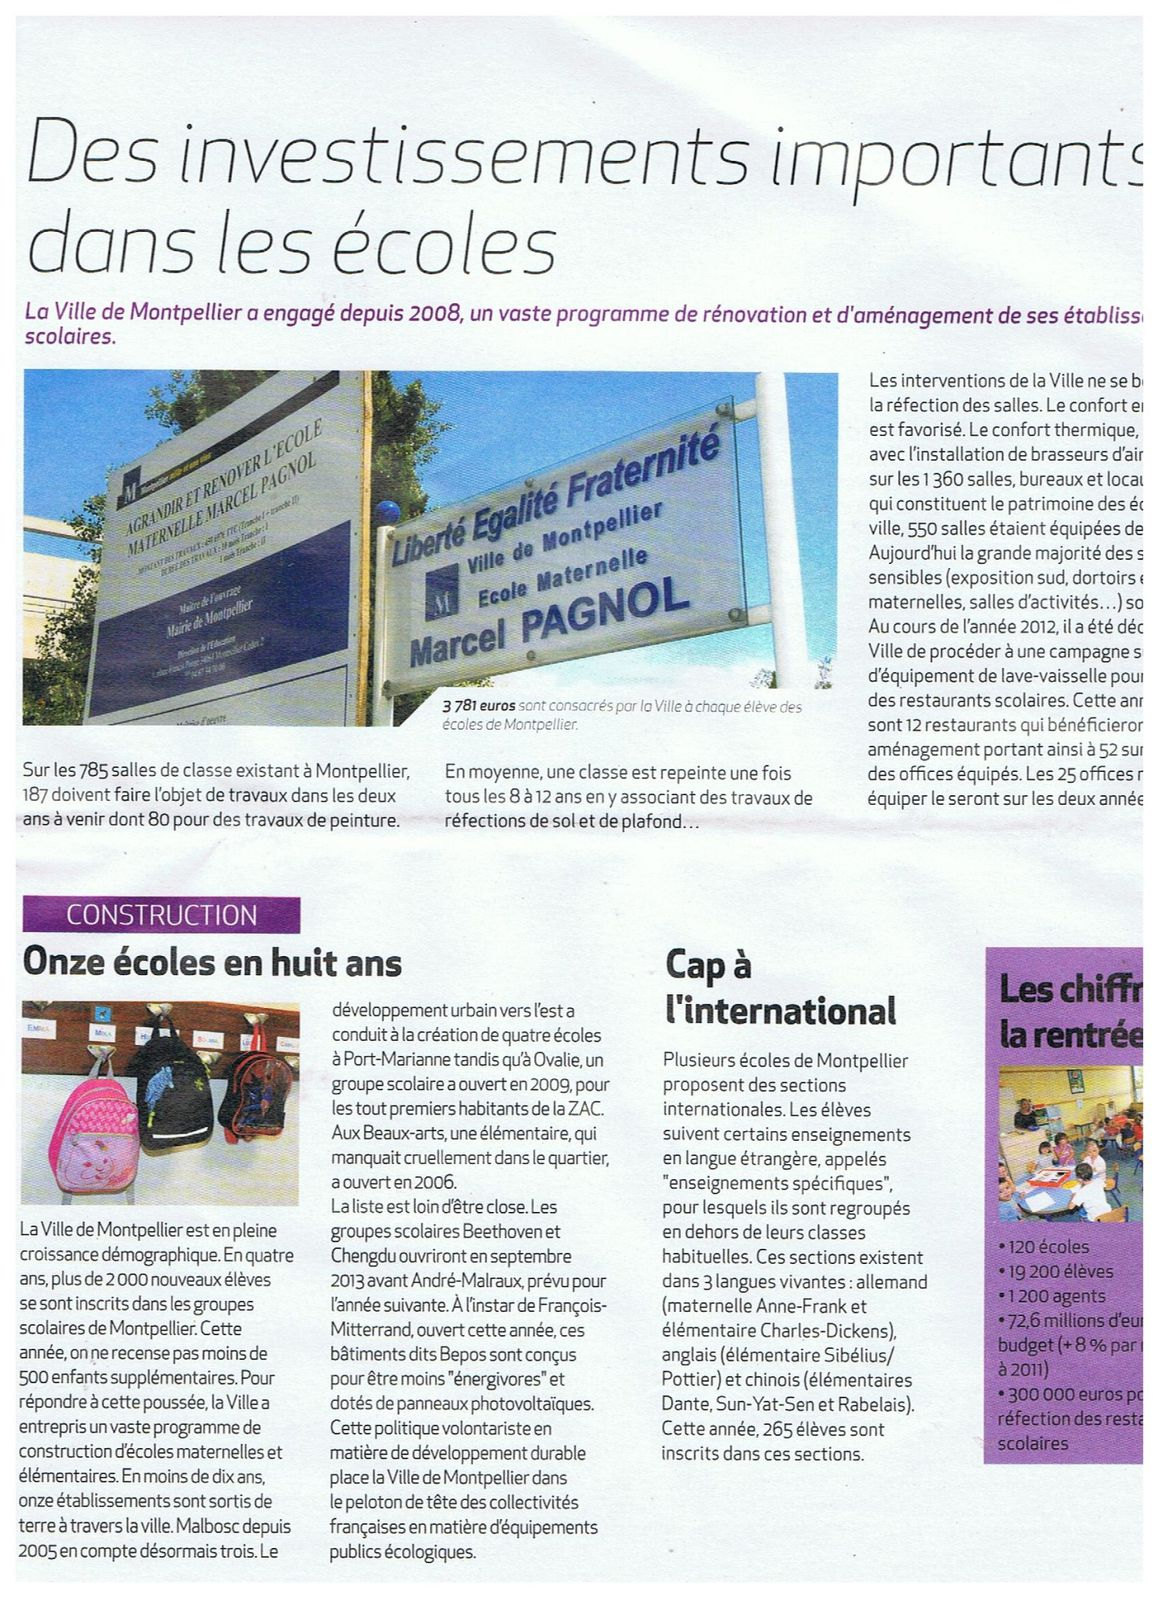 MNV : octobre 2012 nr 371 : 2 pages